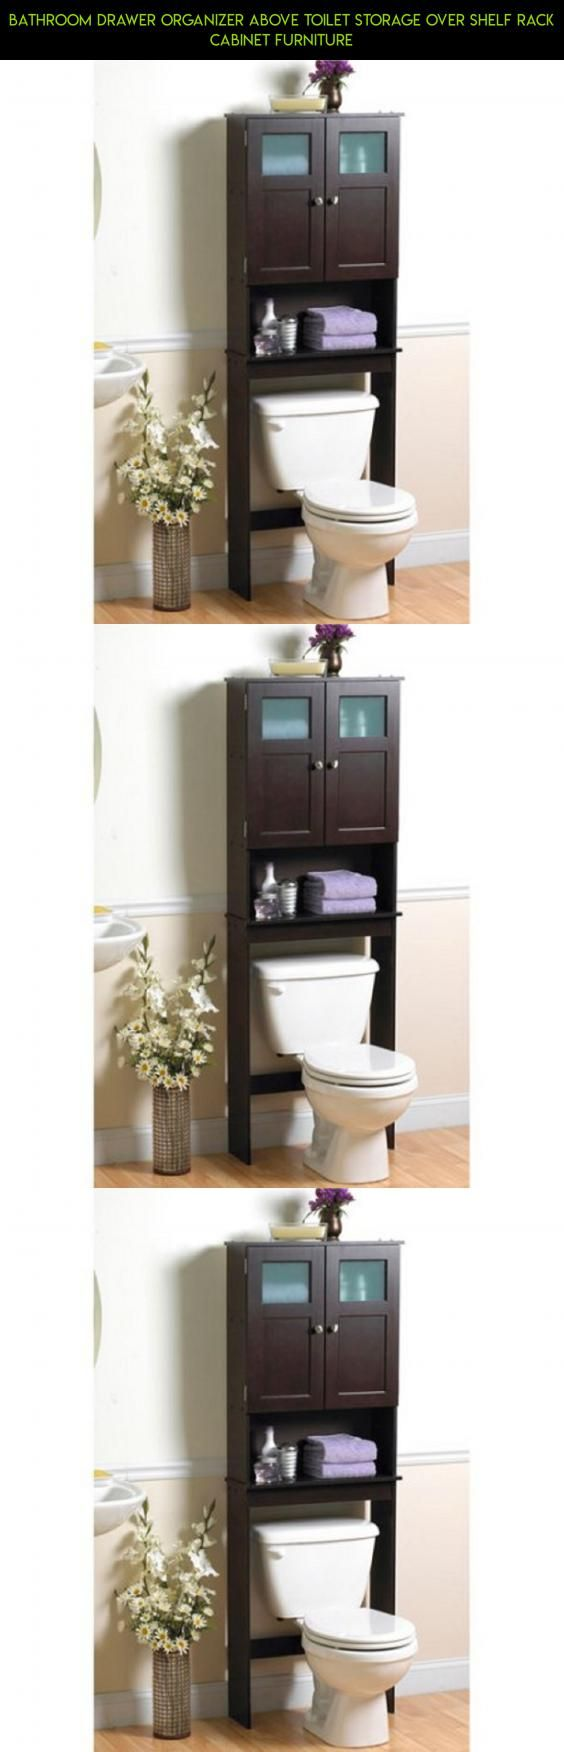 Bathroom cabinets over sink - 25 Best Ideas About Bathroom Cabinets Over Toilet On Pinterest Over Toilet Storage Toilet Storage And Bathroom Storage Units